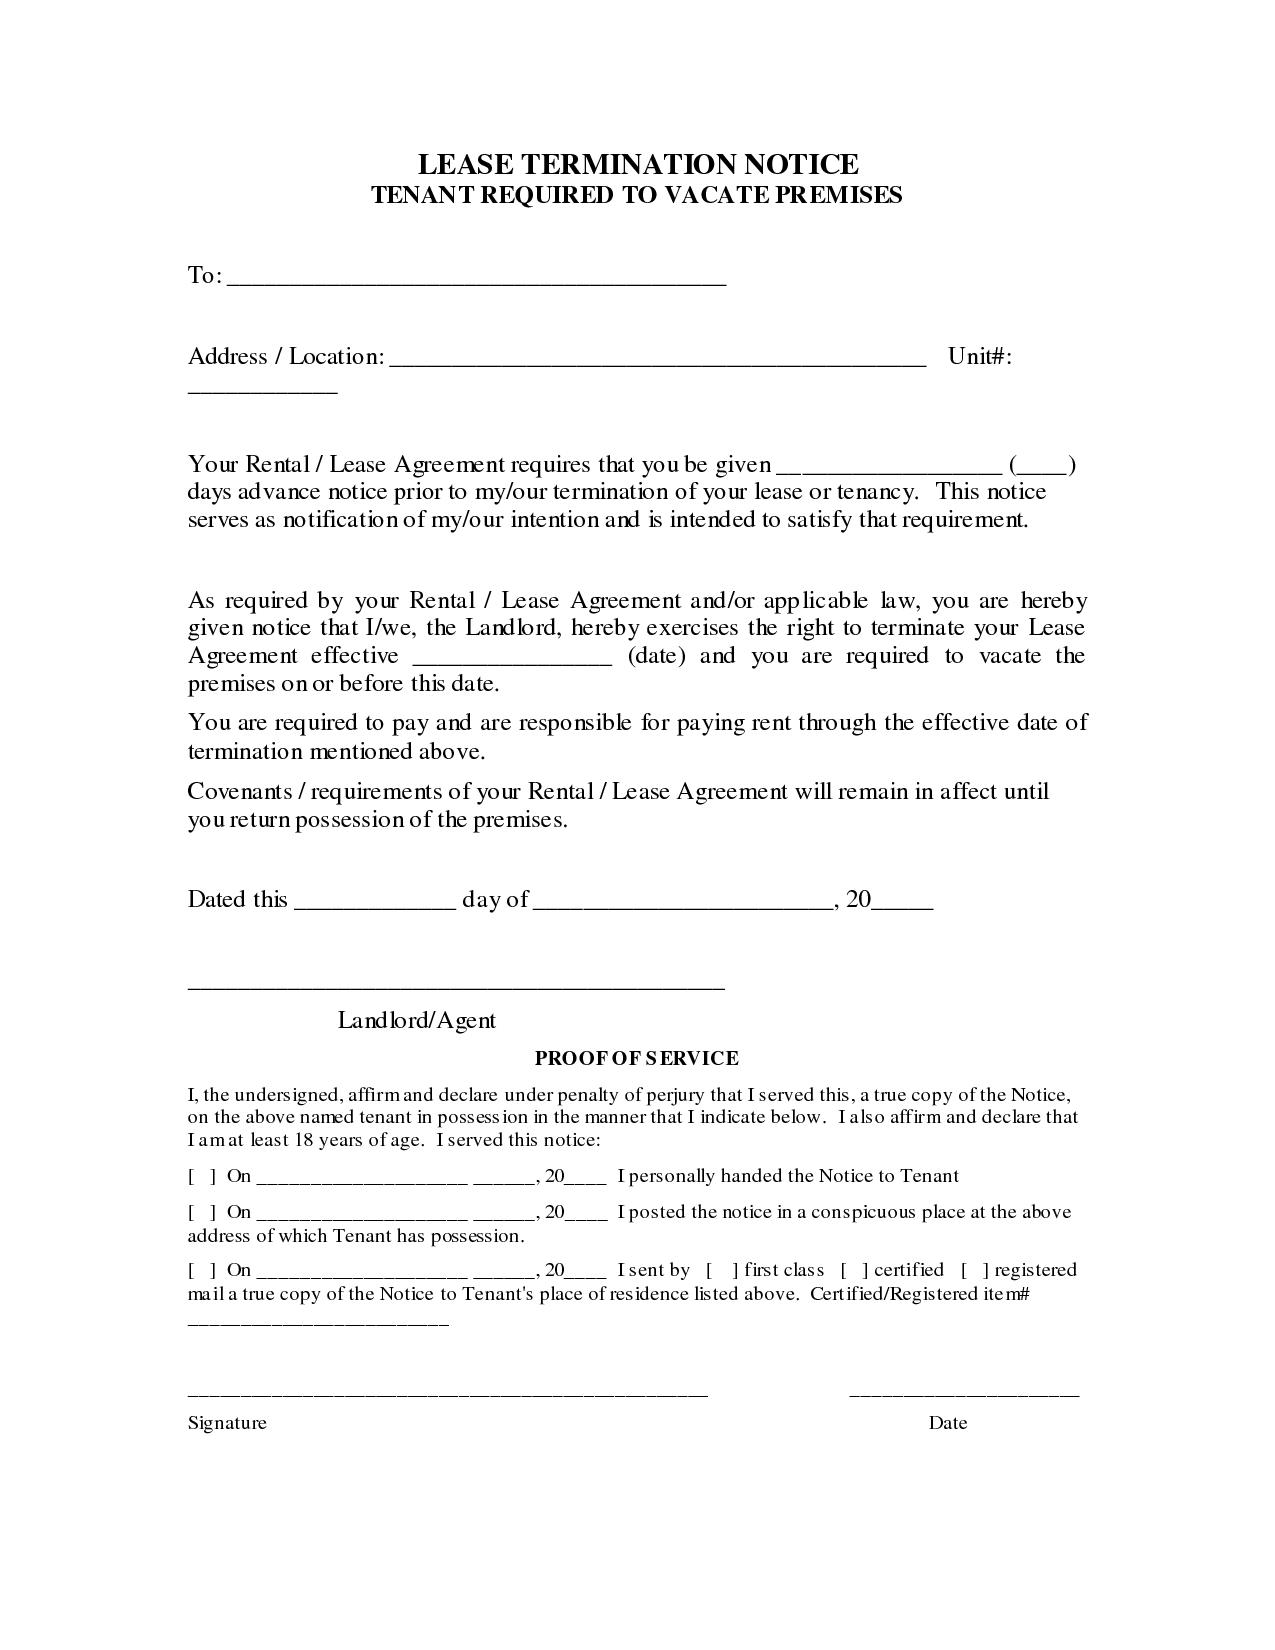 rental agreement termination letter sample lease from landlord tenant - Landlord Lease Termination Letter Sample